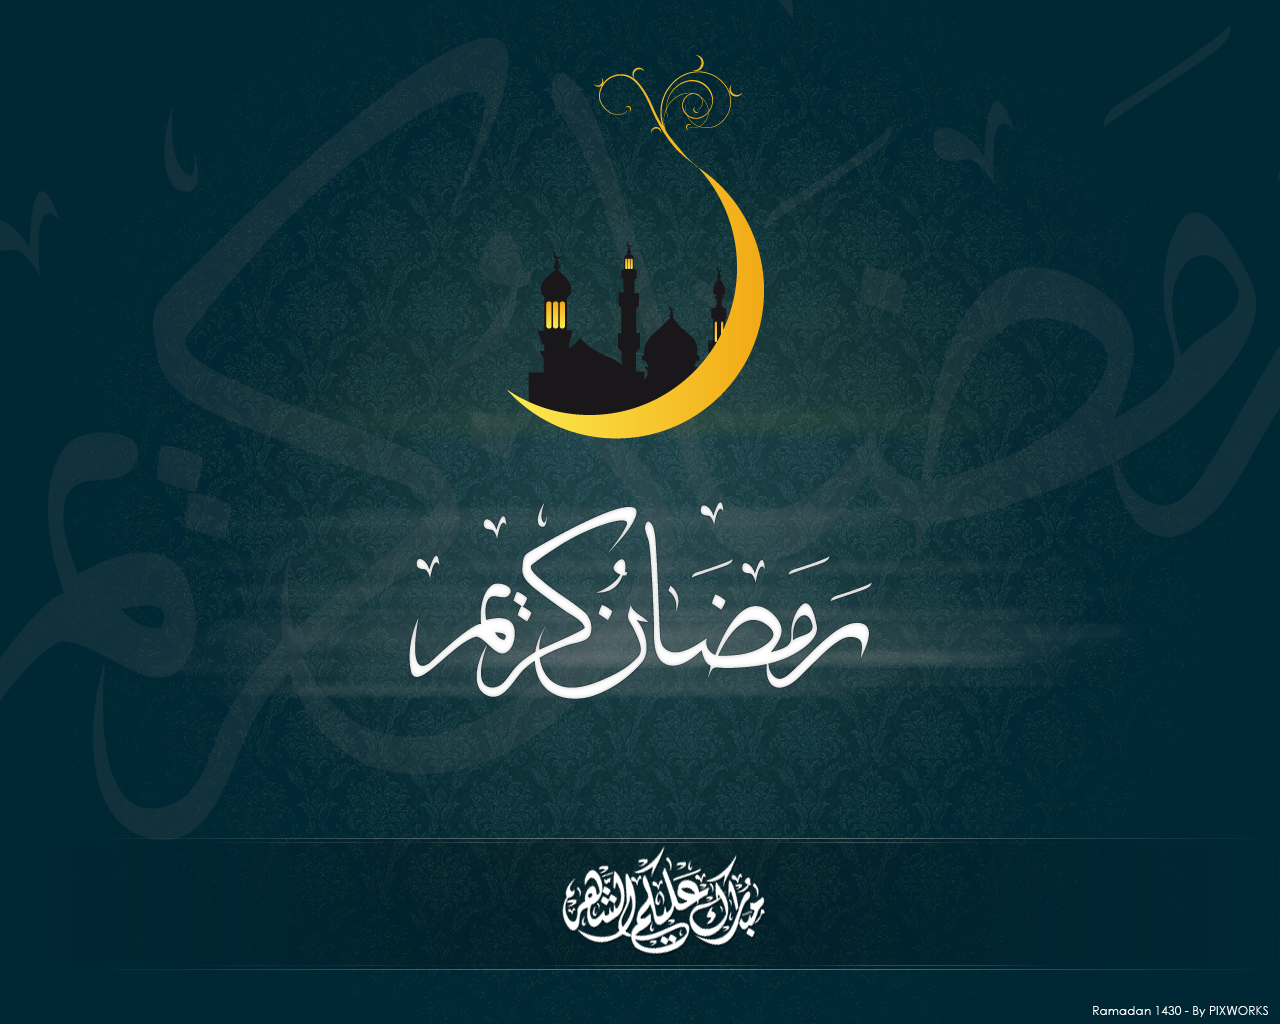 Ramadan Wallpapers Hd - Ramadan HD PNG